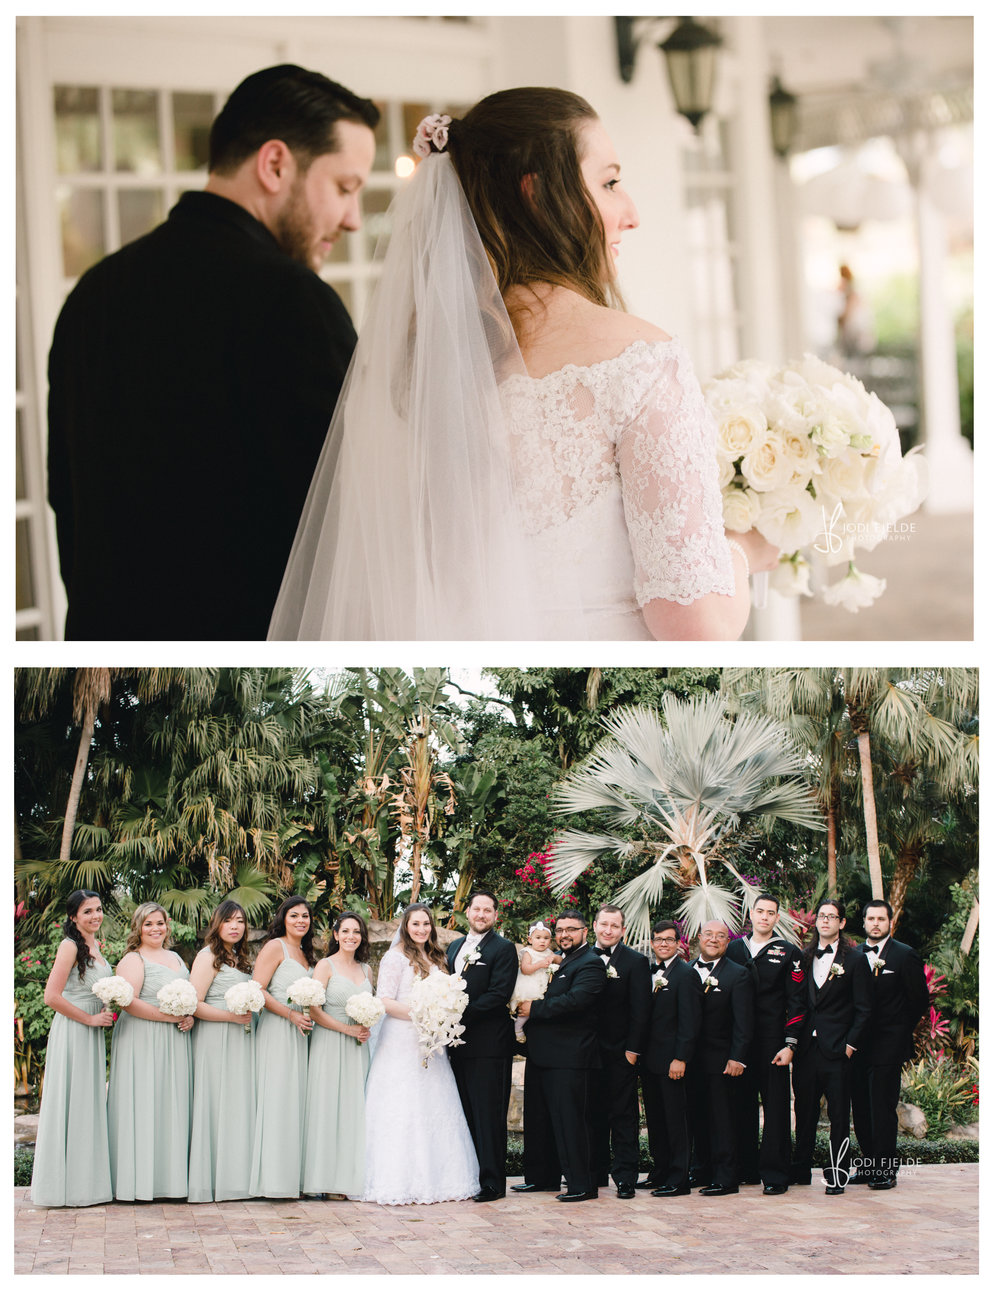 Deer_Creek_Country_Club_Wedding_Jodi_Fjelde_Photography_Andrea_Jason_13.jpg